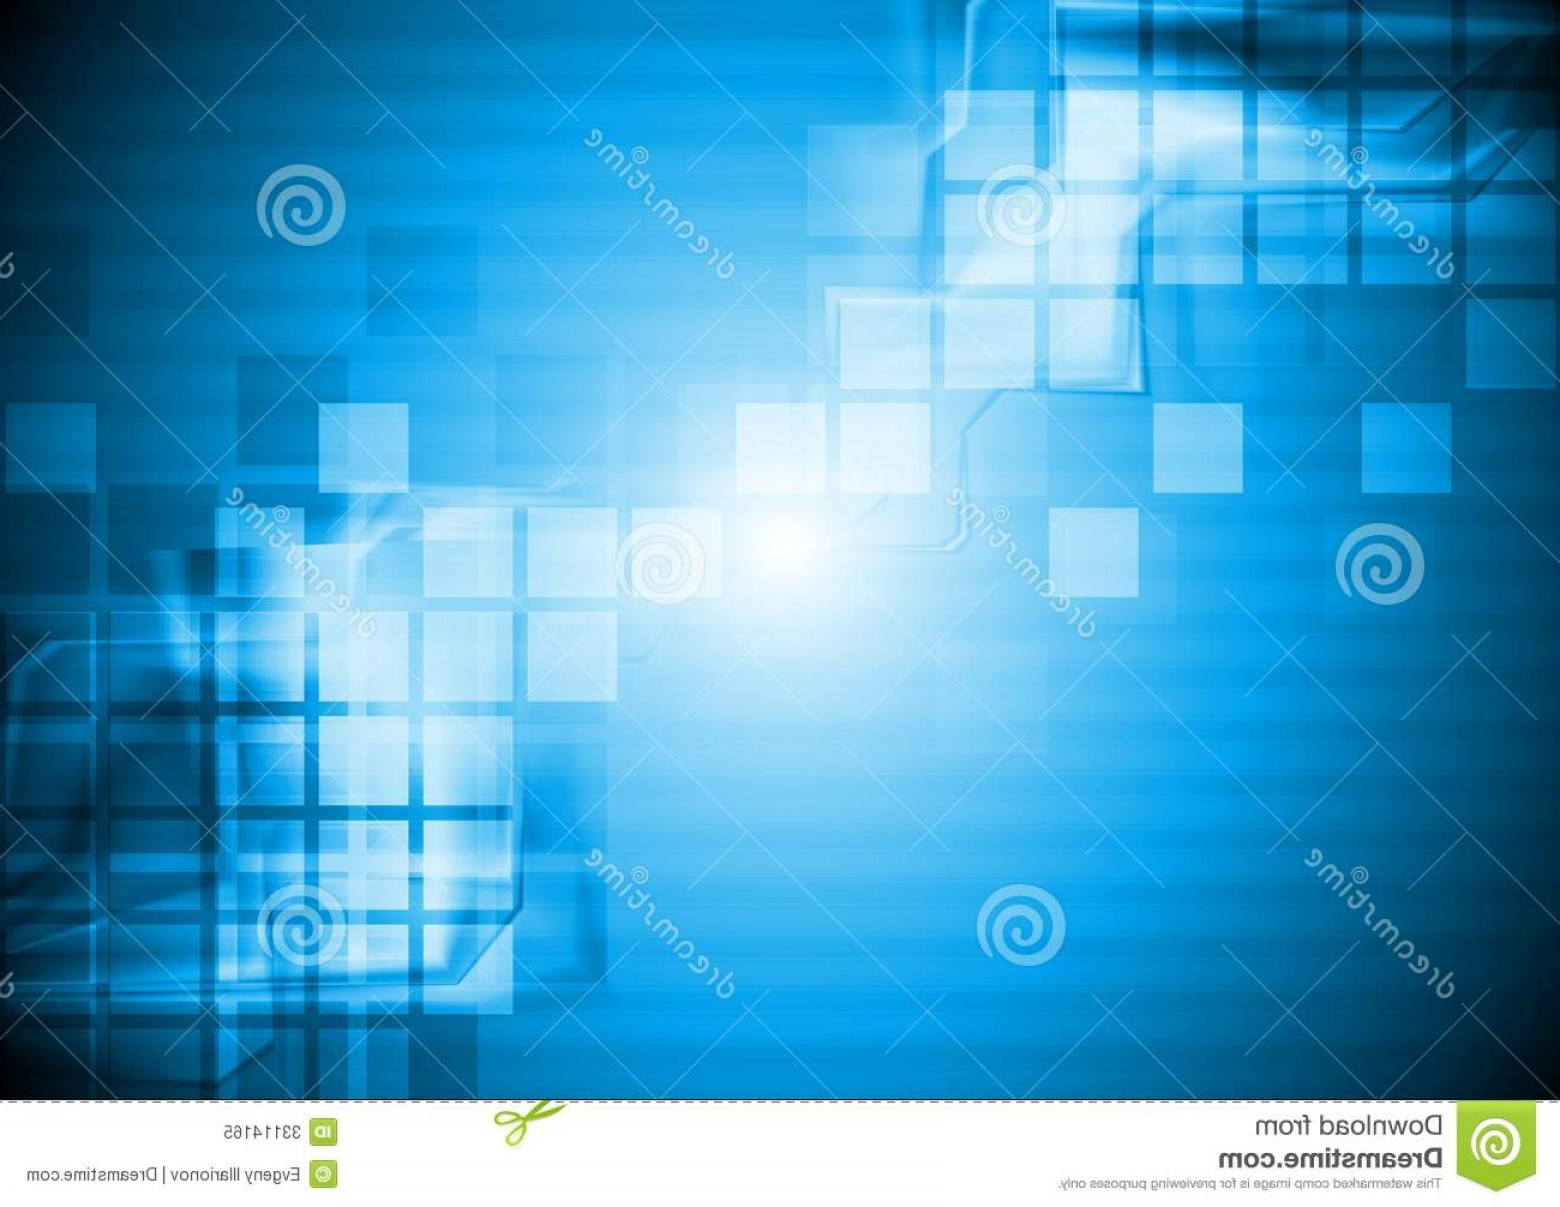 Vector Abstract Elegant Design: Royalty Free Stock Photo Bright Elegant Vector Design Abstract Blue Hi Tech Background Eps Image